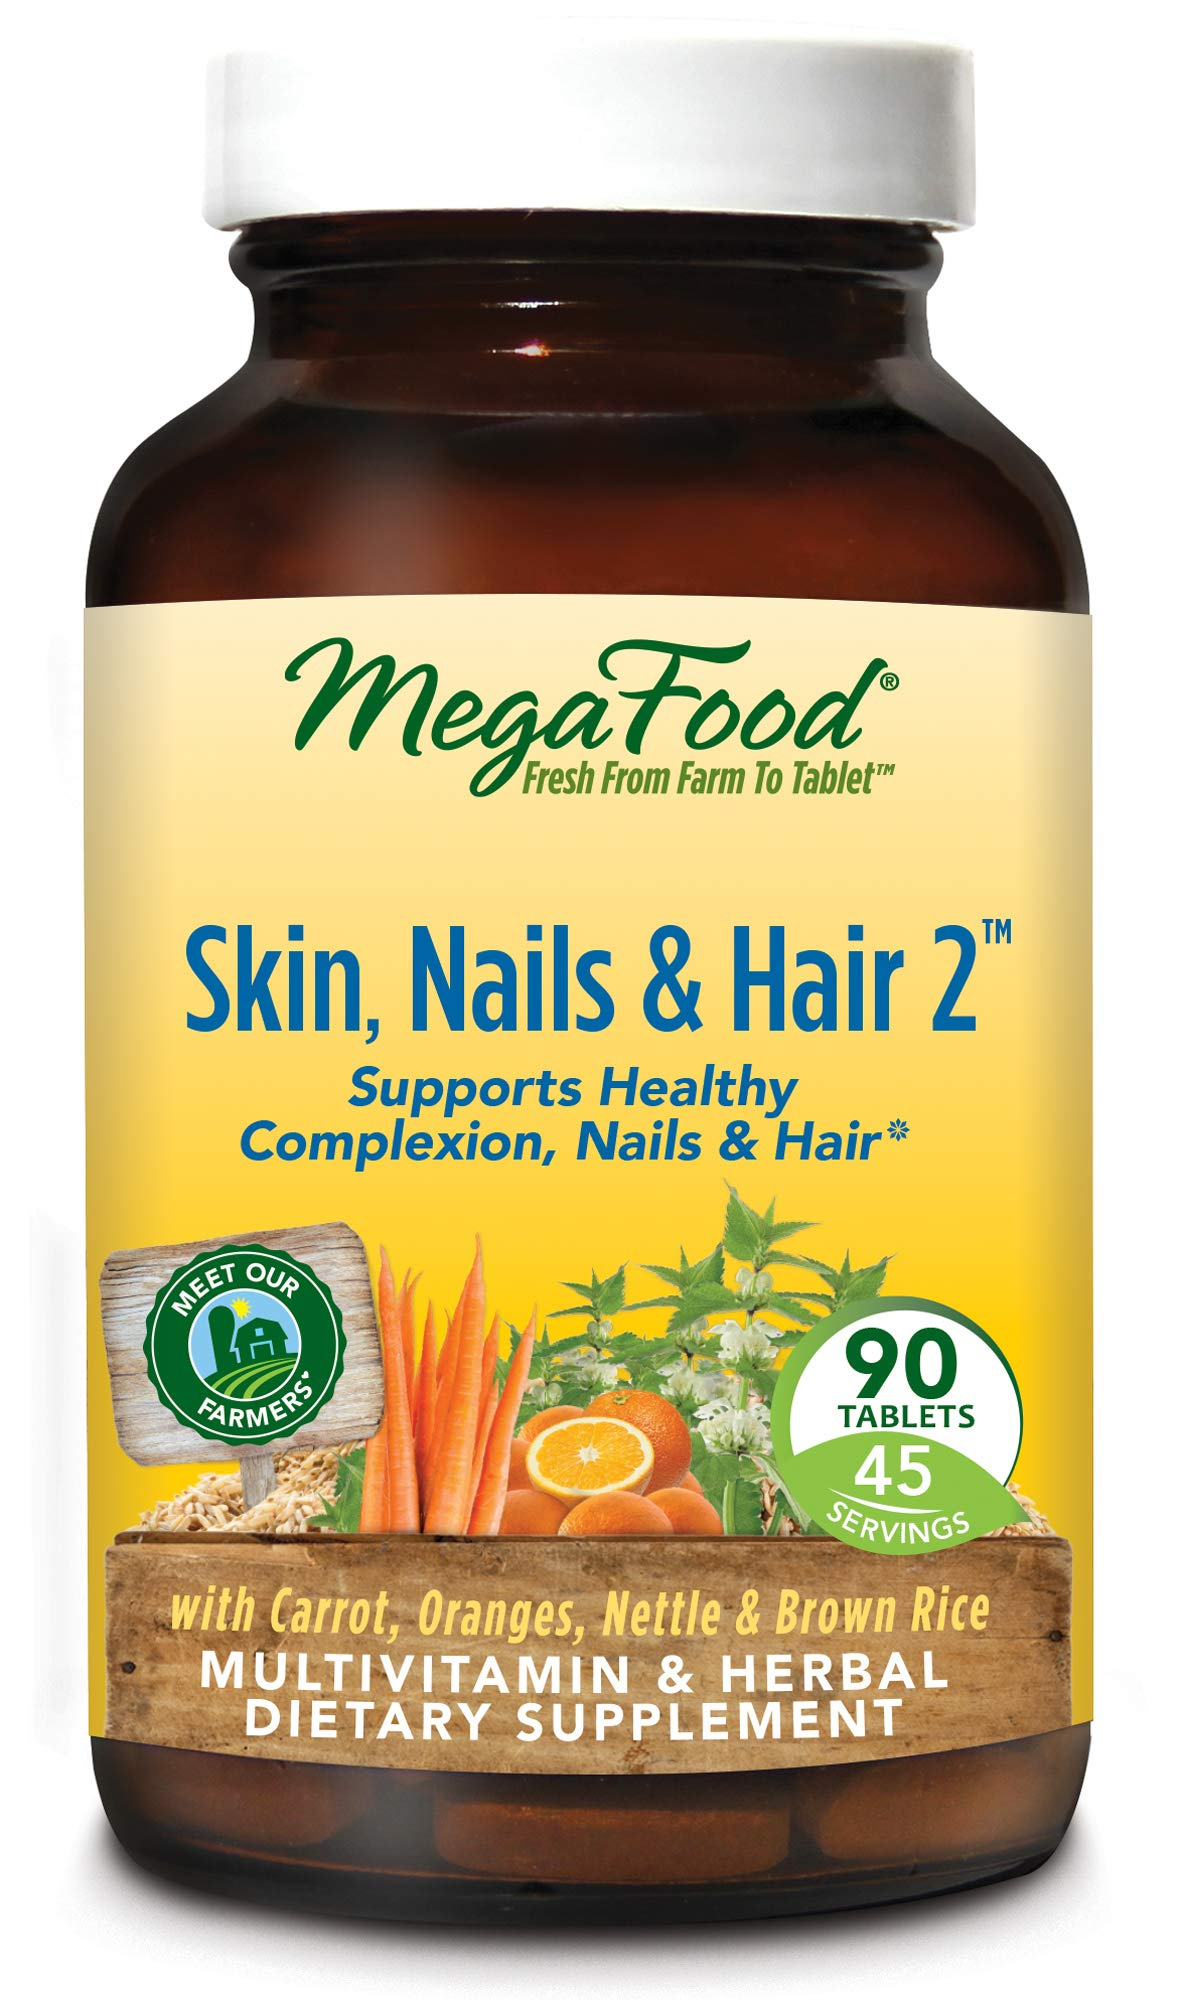 MegaFood, Skin, Nails, and Hair 2, Whole Food Multivitamin and Dietary Supplement, Supports Healthy Complexion, Nails, and Hair, Vegetarian, Gluten Free, Non-GMO, 90 Tablets (45 Servings)